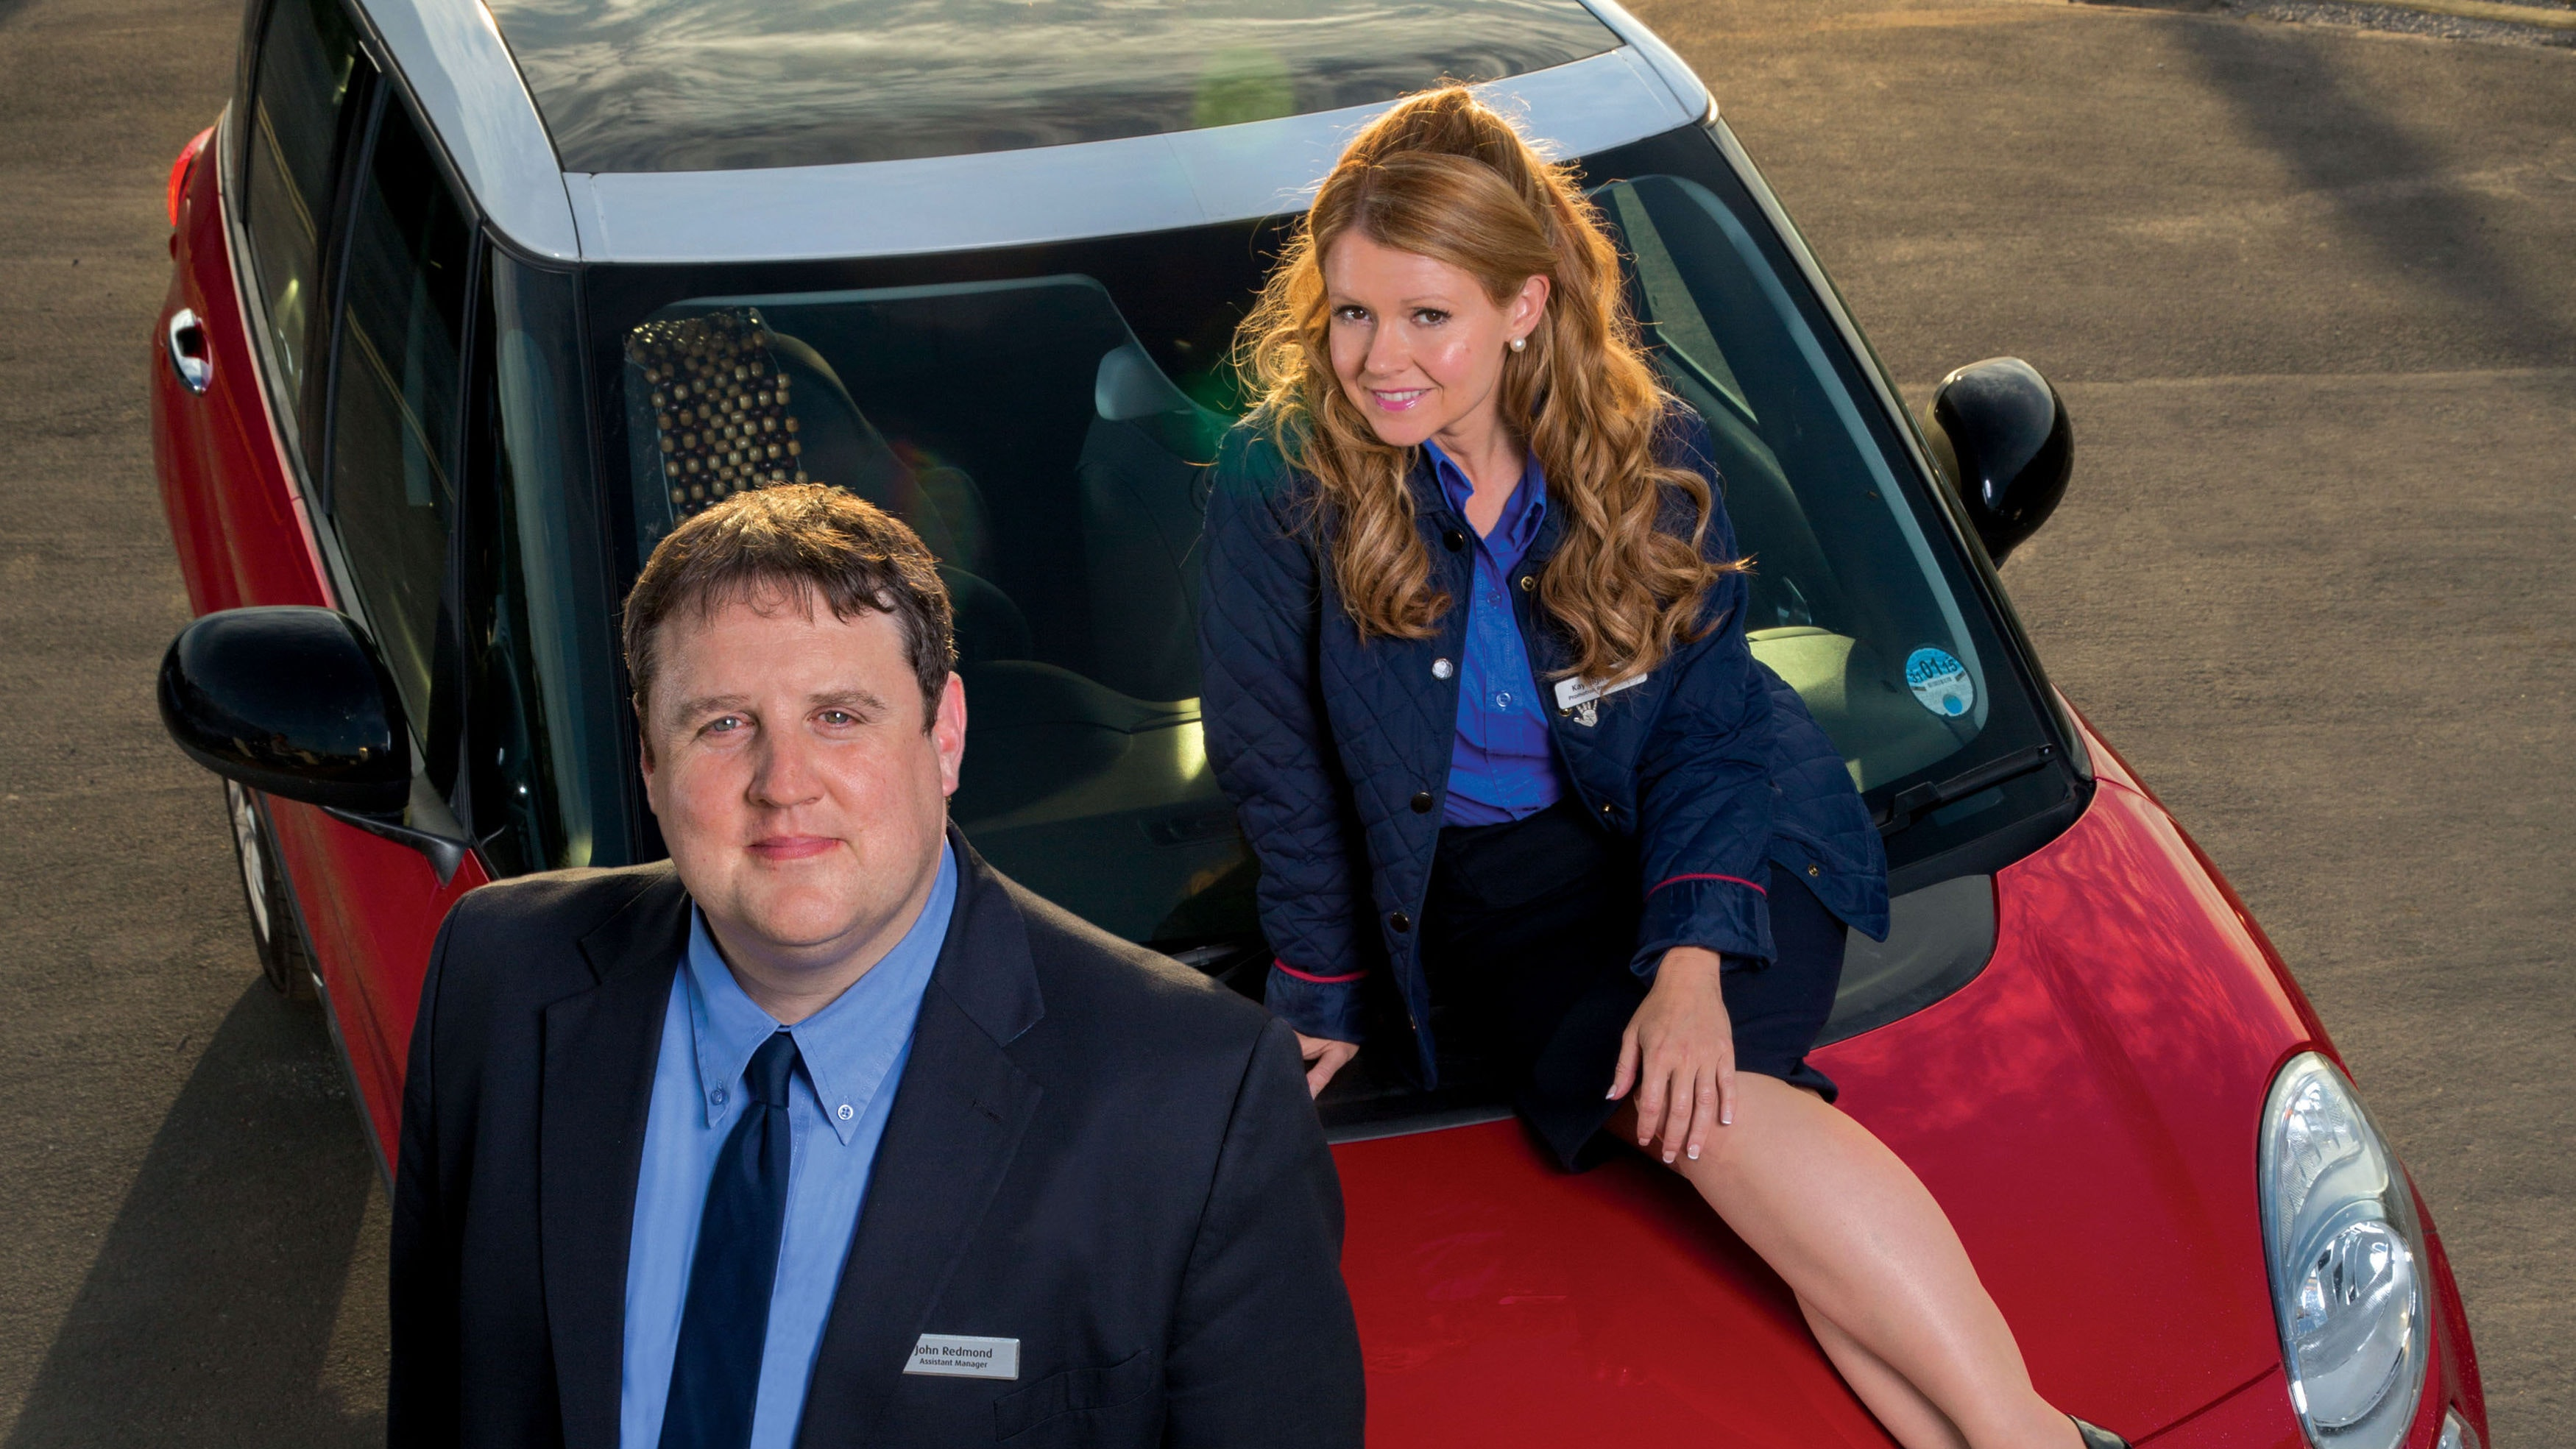 Peter Kay breaks social media silence to announce charity Car Share screening